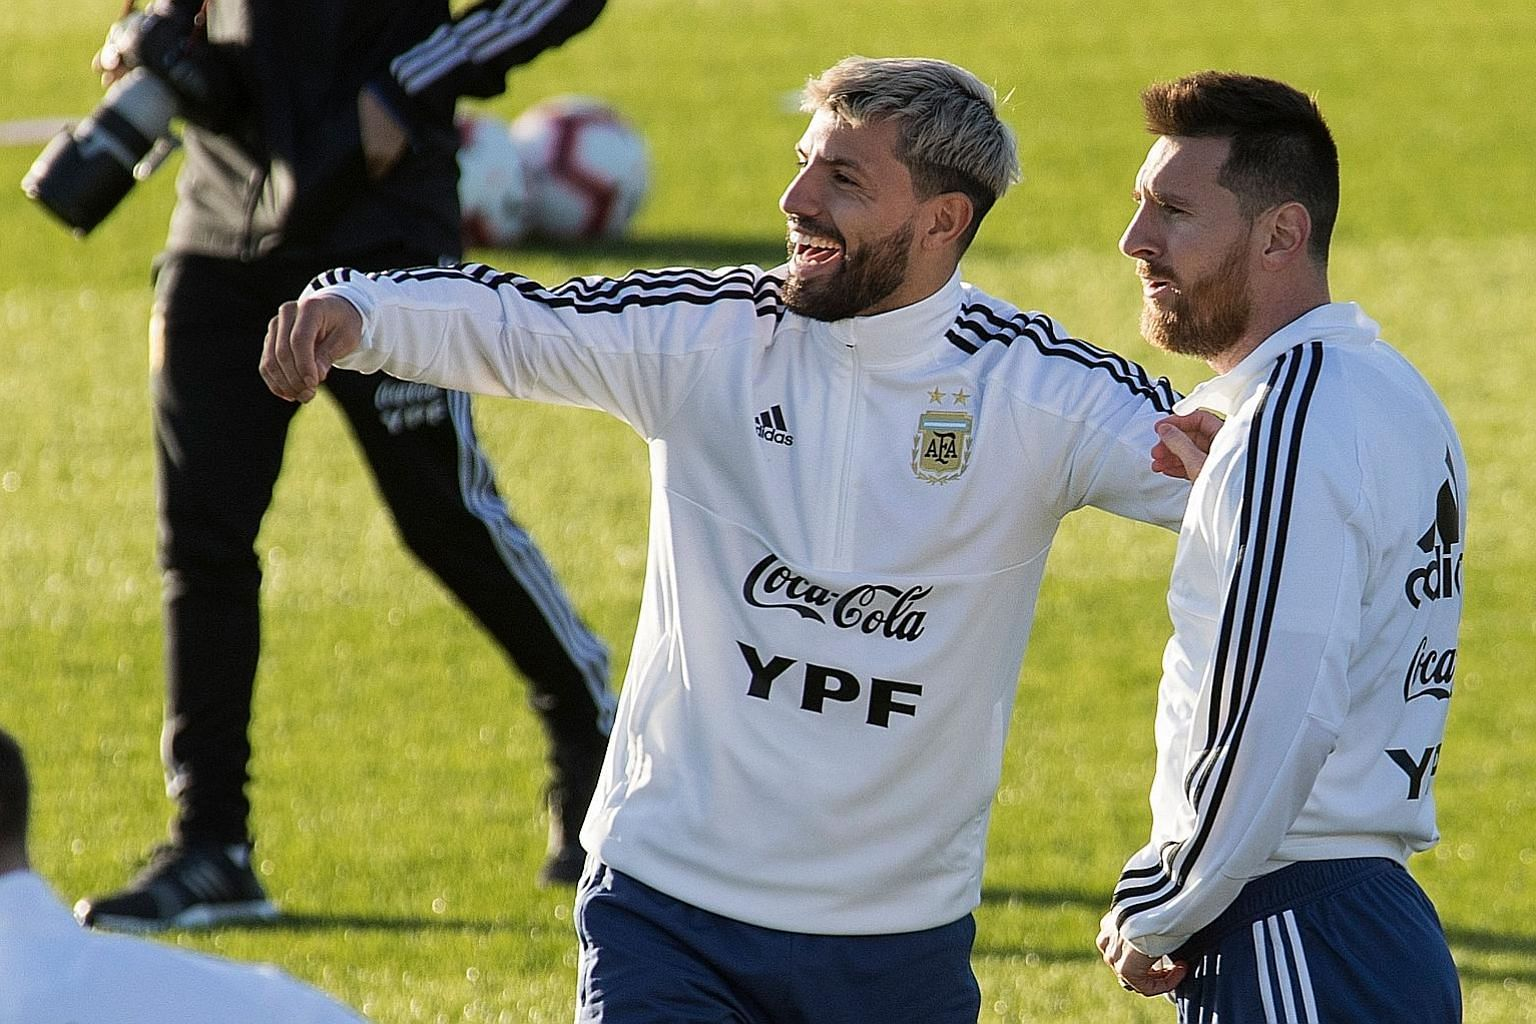 Argentina forwards Sergio Aguero and Lionel Messi sharing a laugh during a training session in Mallorca ahead of their friendly match against Brazil in Saudi Arabia today. Messi is back from a three-month ban for labelling the South American football